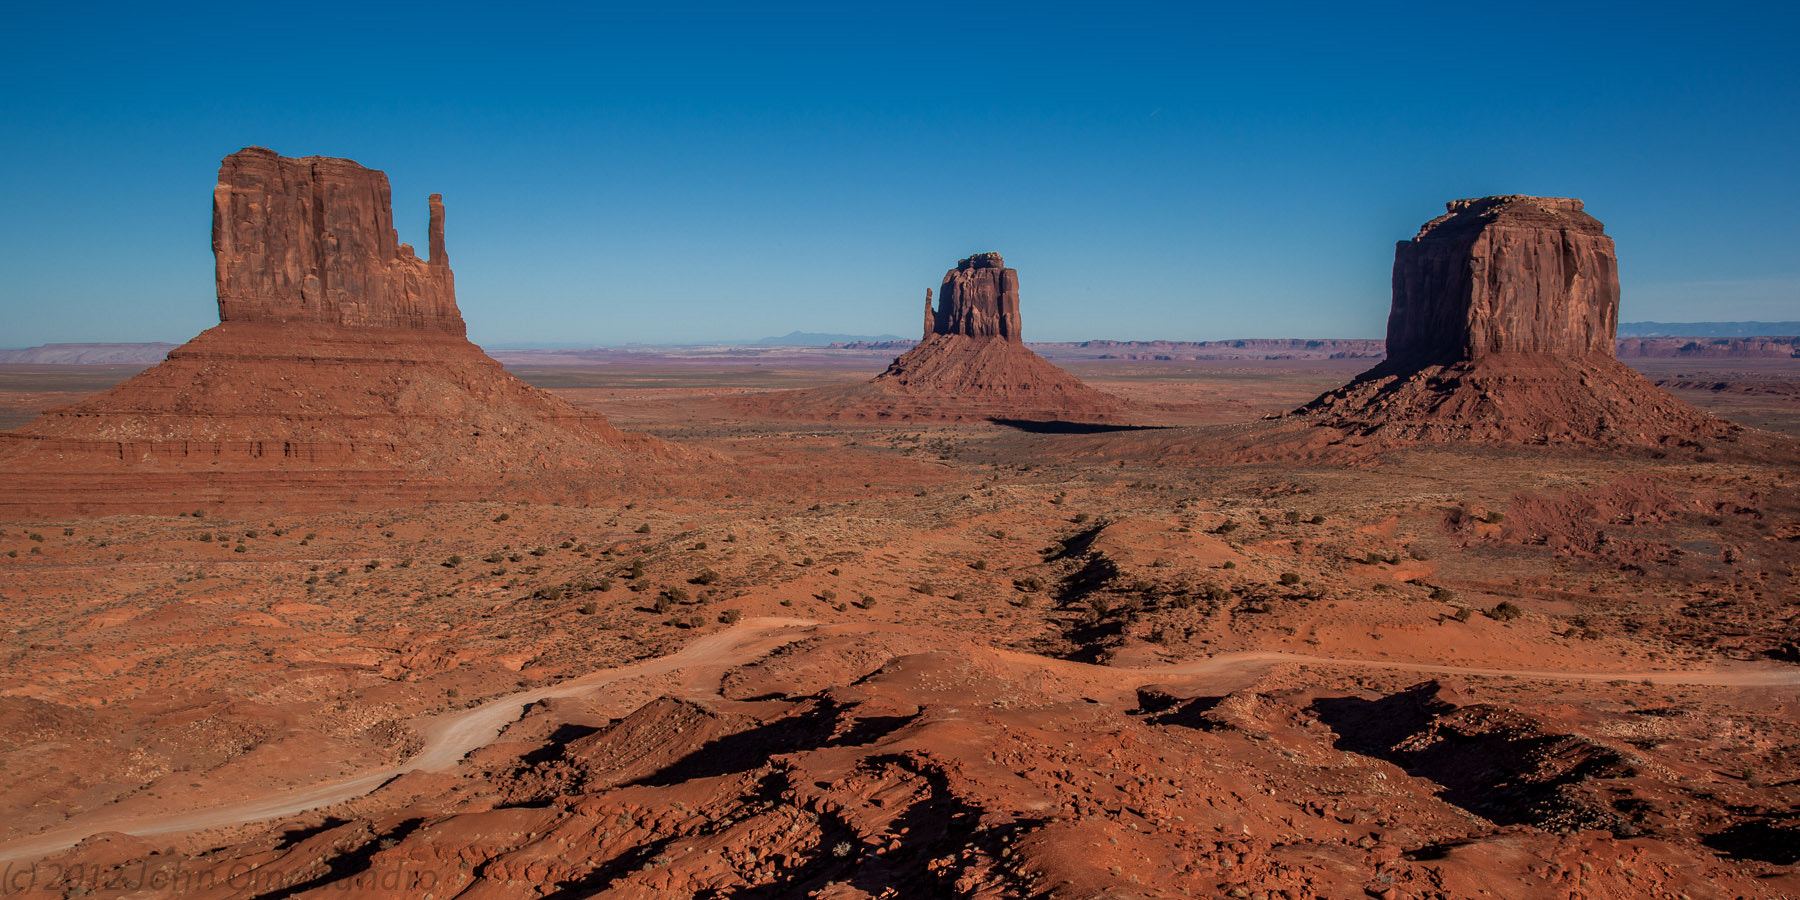 Photograph Monument Valley on a Clear Day by John Omohundro on 500px